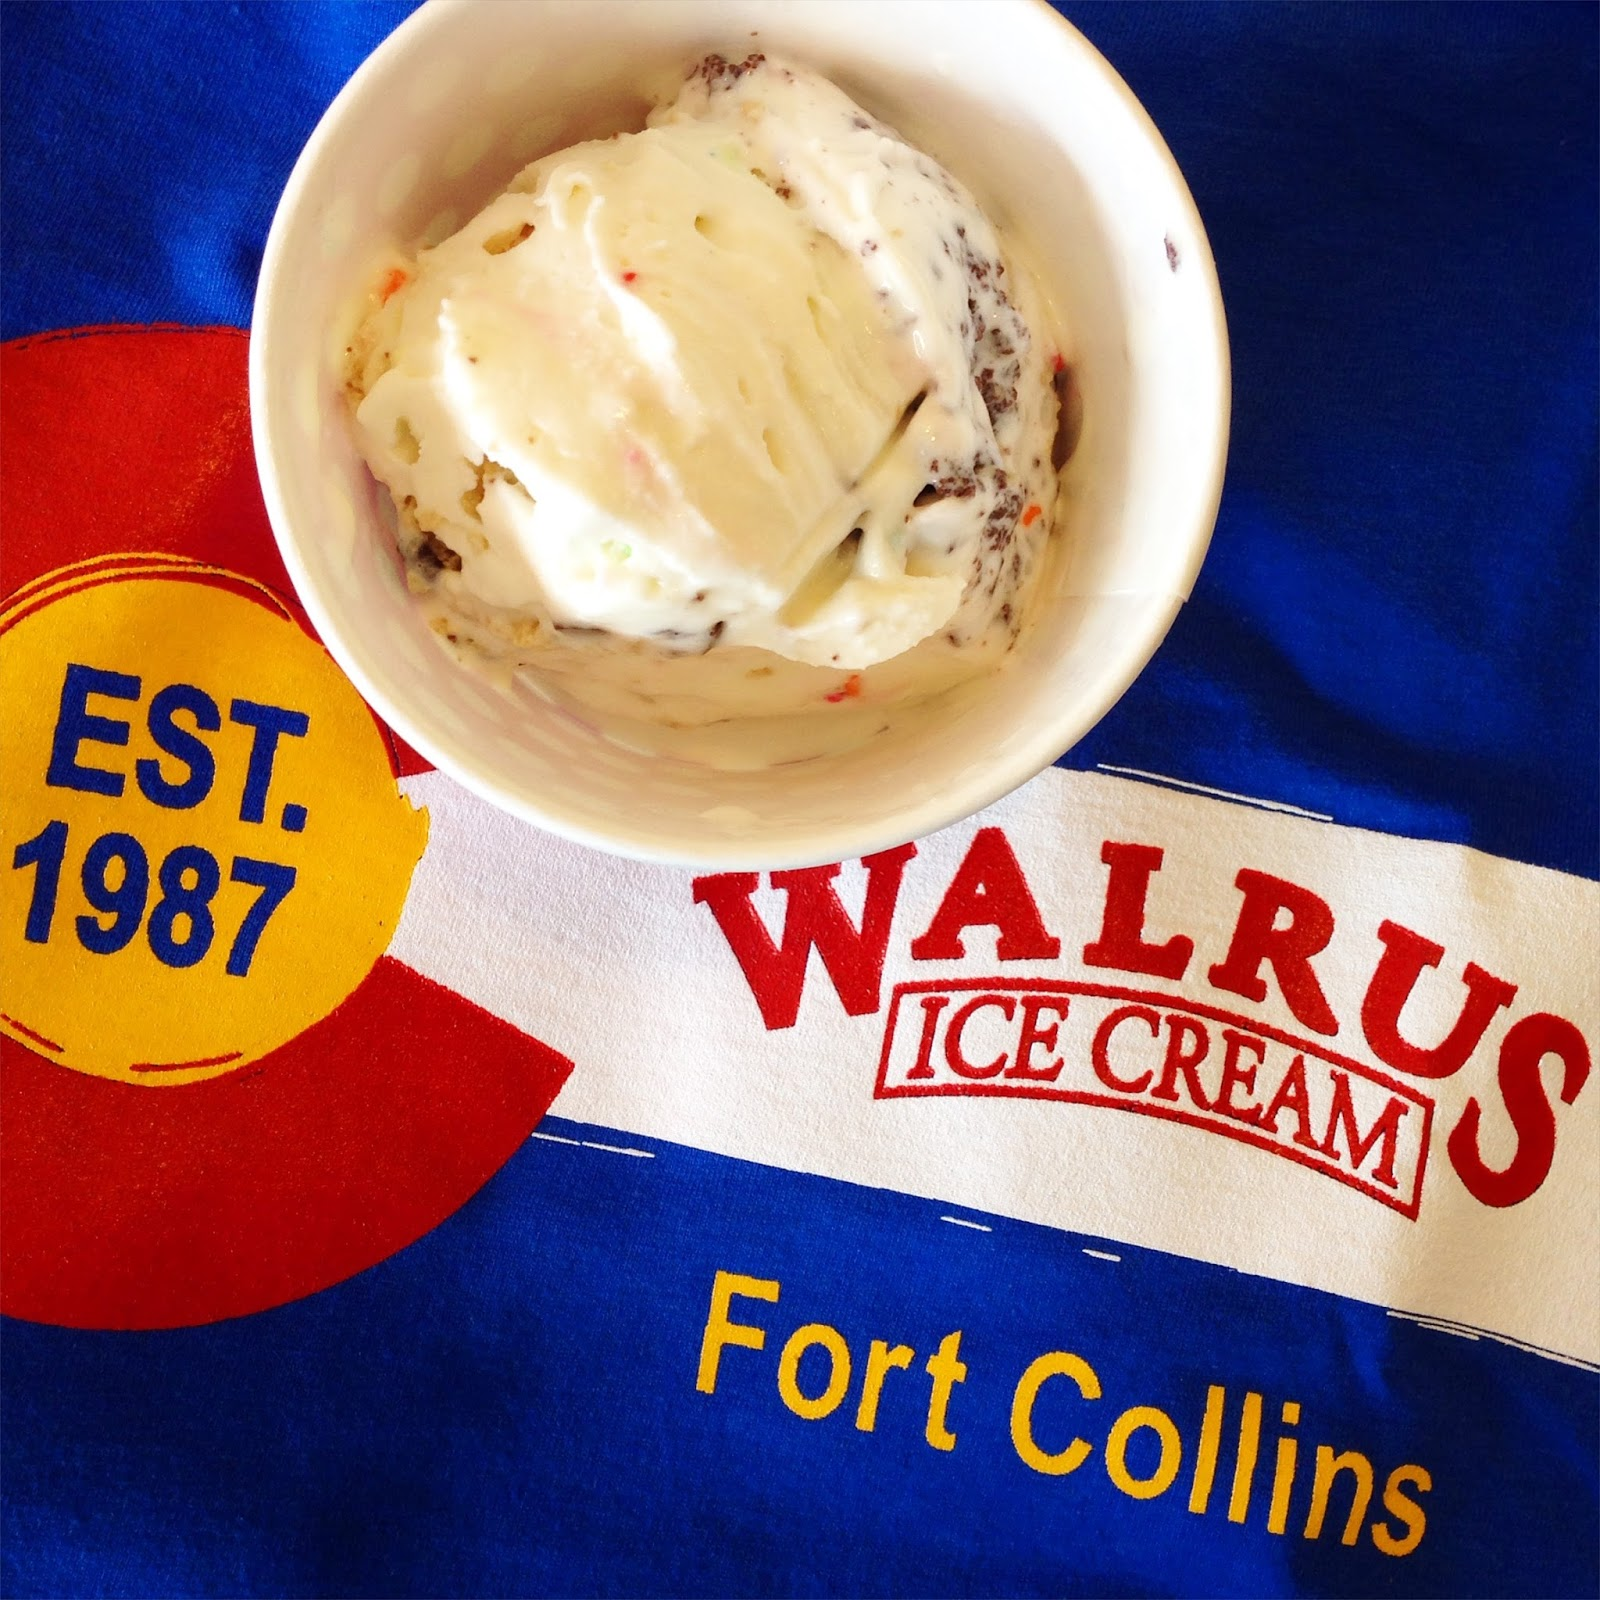 Wyoming Road Trip, Fort Collins Colorado, Old Town Fort Collins, Walrus Ice Cream